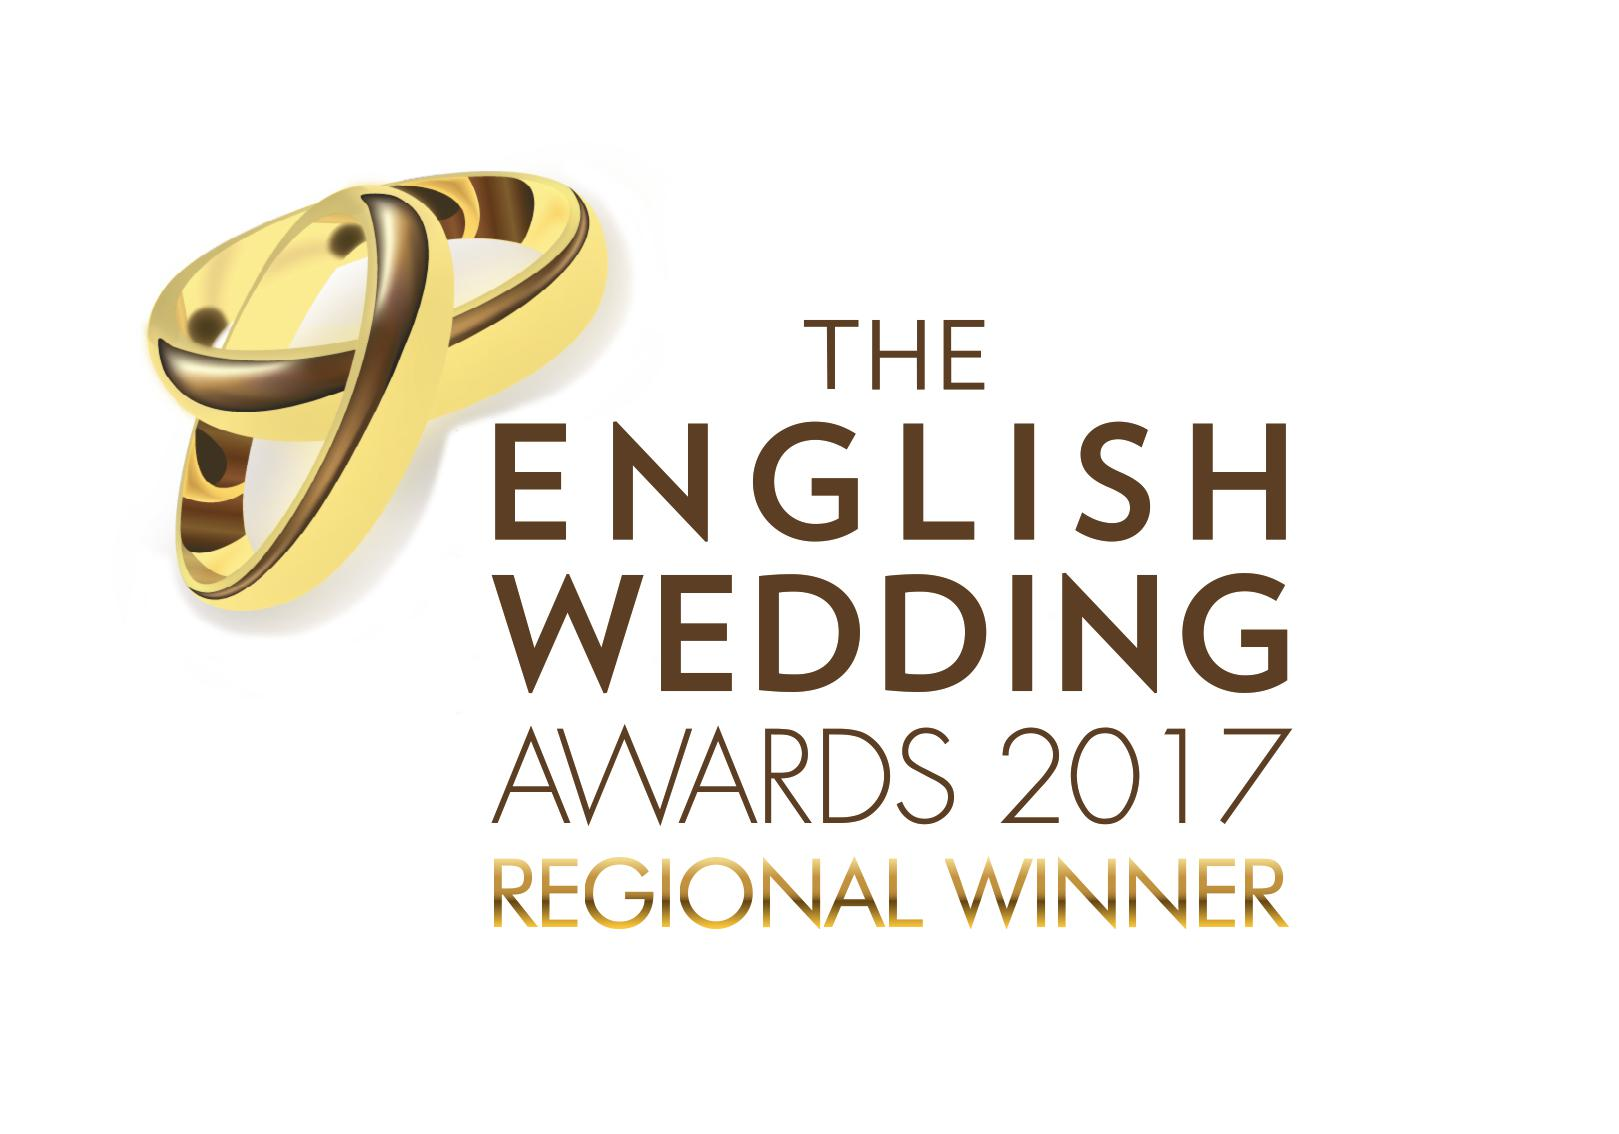 The English Wedding Awards – Regional Winner's Logo